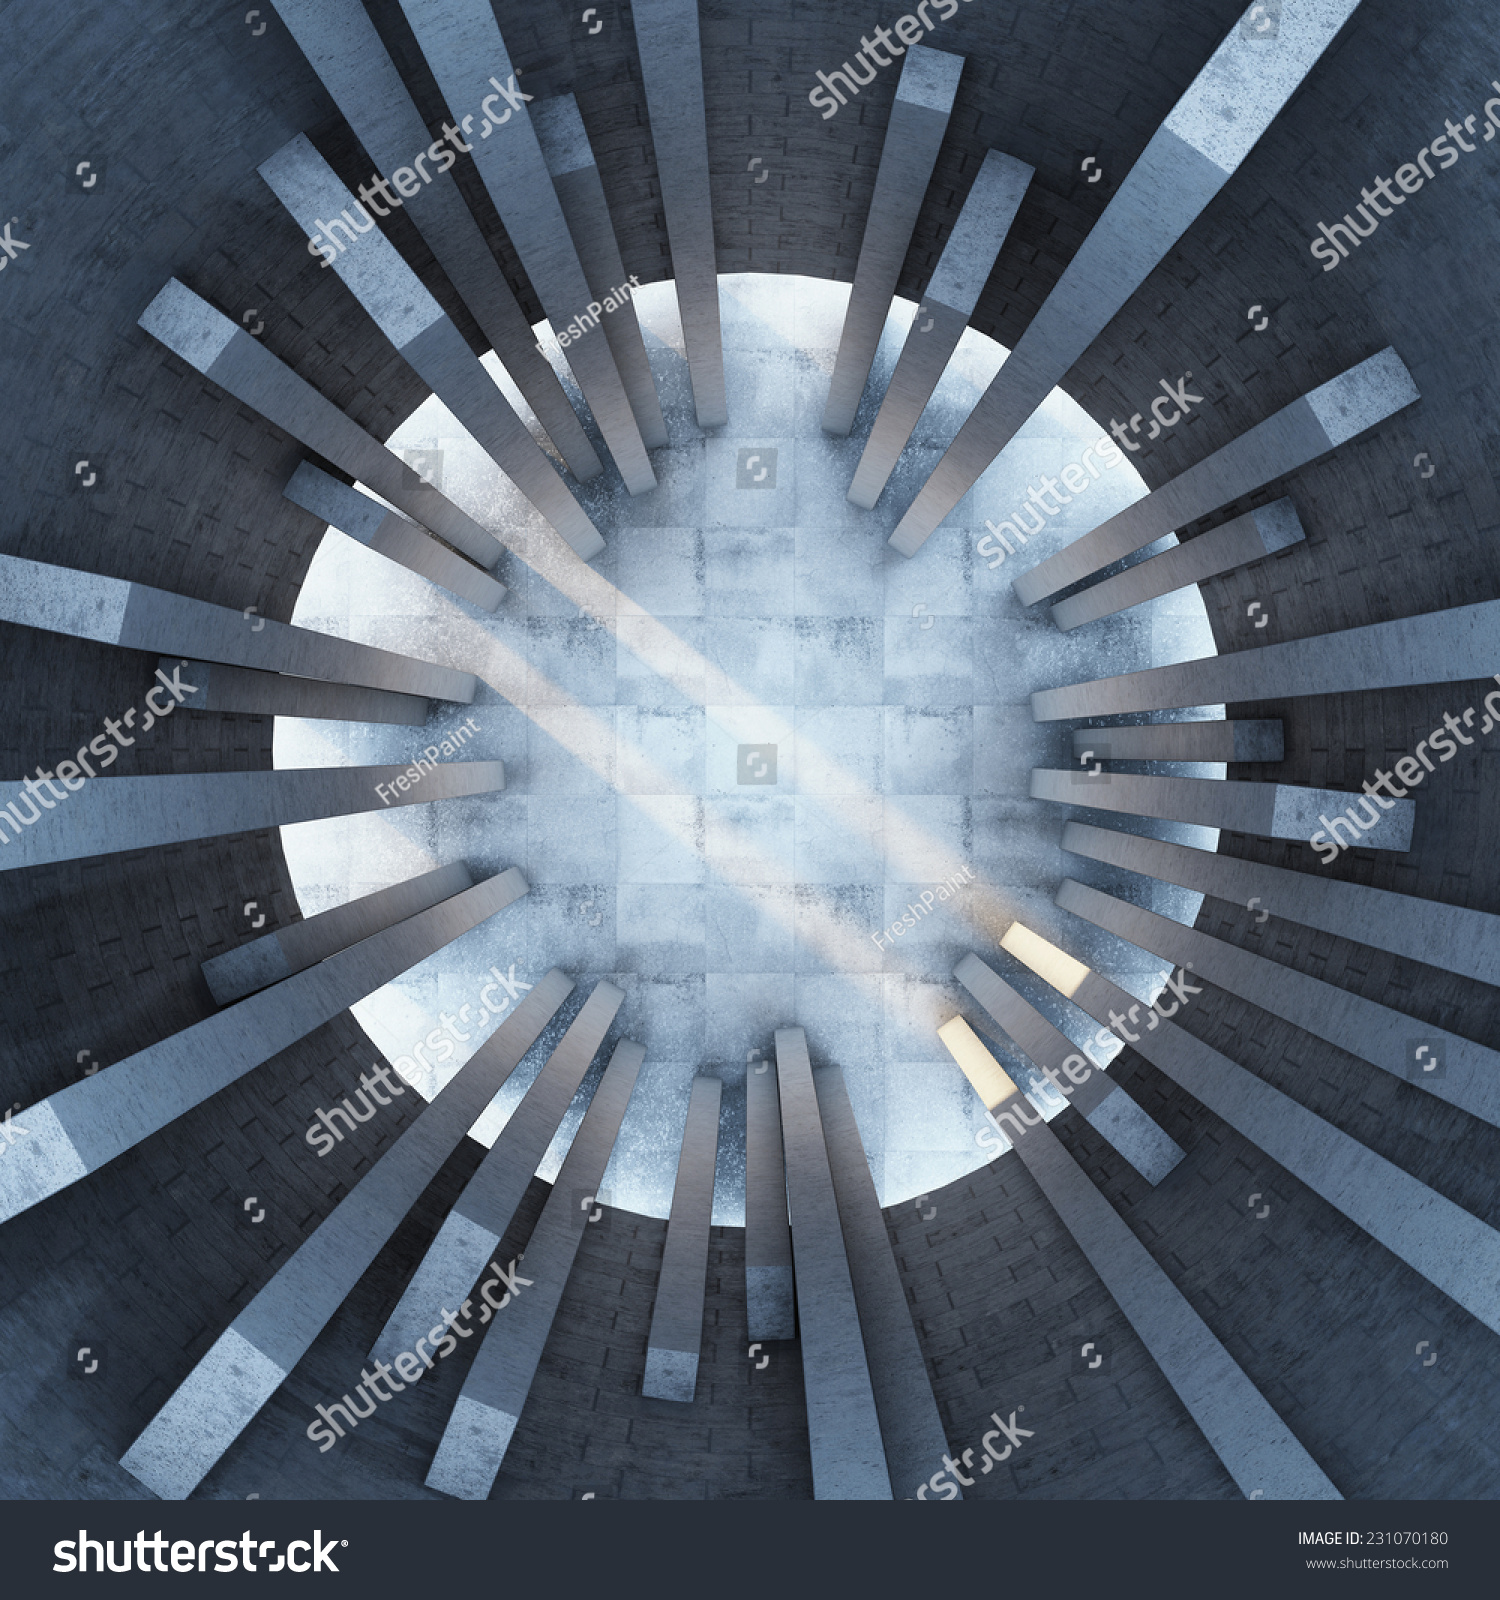 Architectural design building top view stock illustration for Top view design